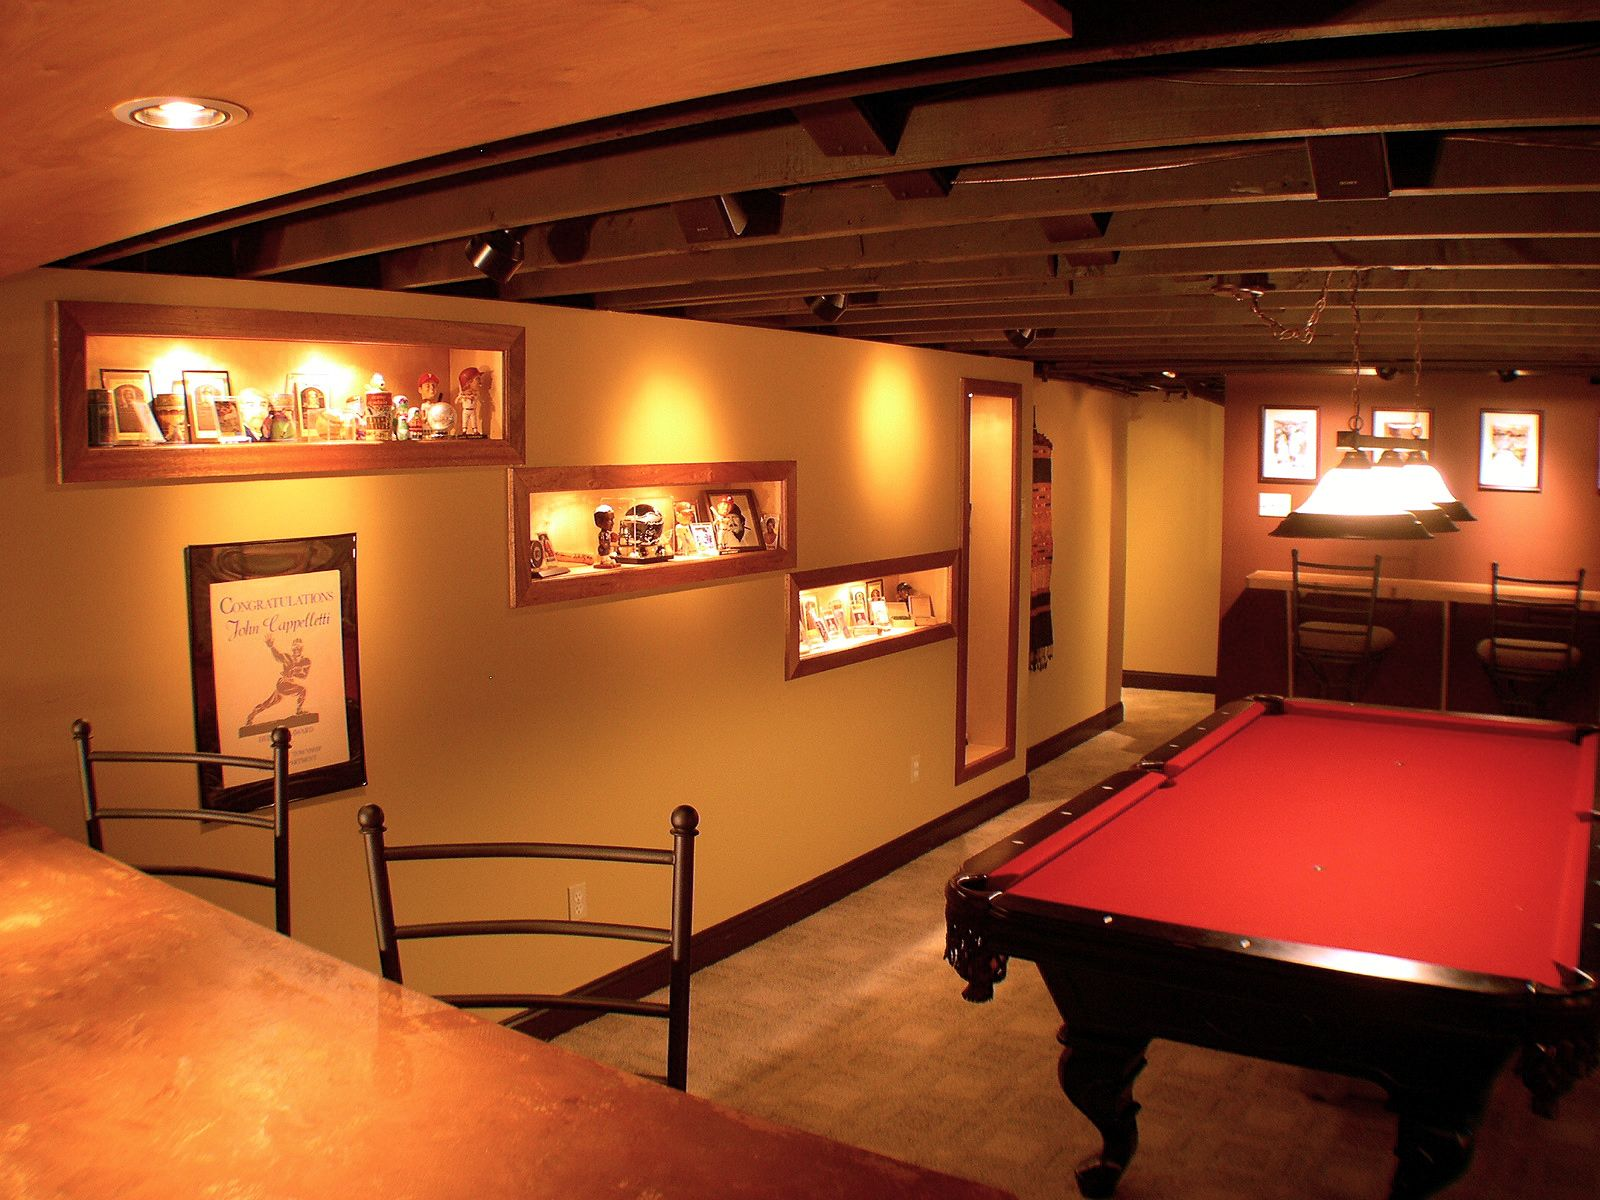 Man Cave Bar California : This man cave features a pool table and bar surrounded by